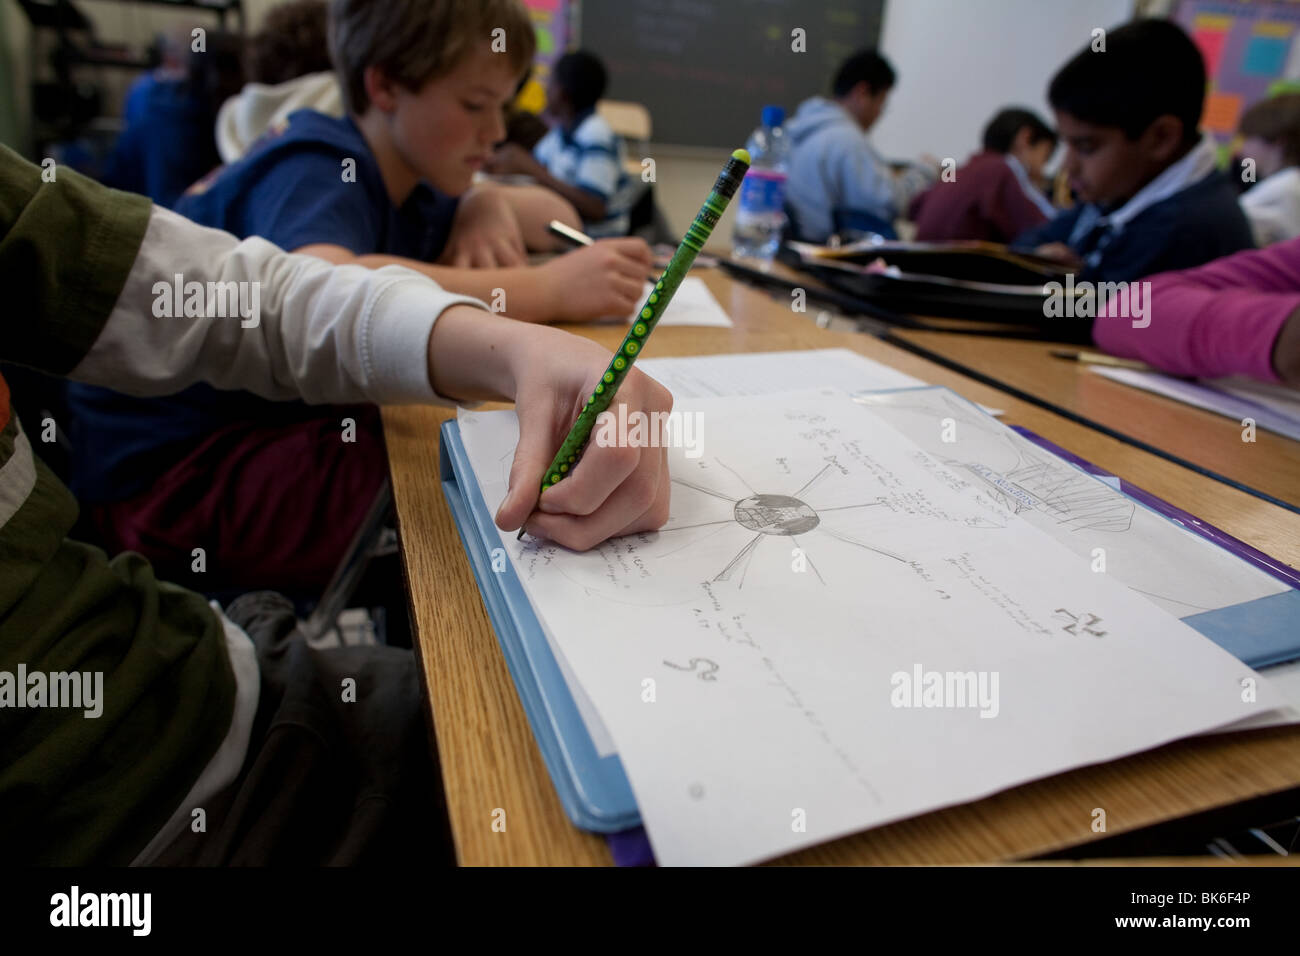 Left handed student draws on white paper with green pencil in classroom at Kealing Middle School in Austin, Texas, - Stock Image